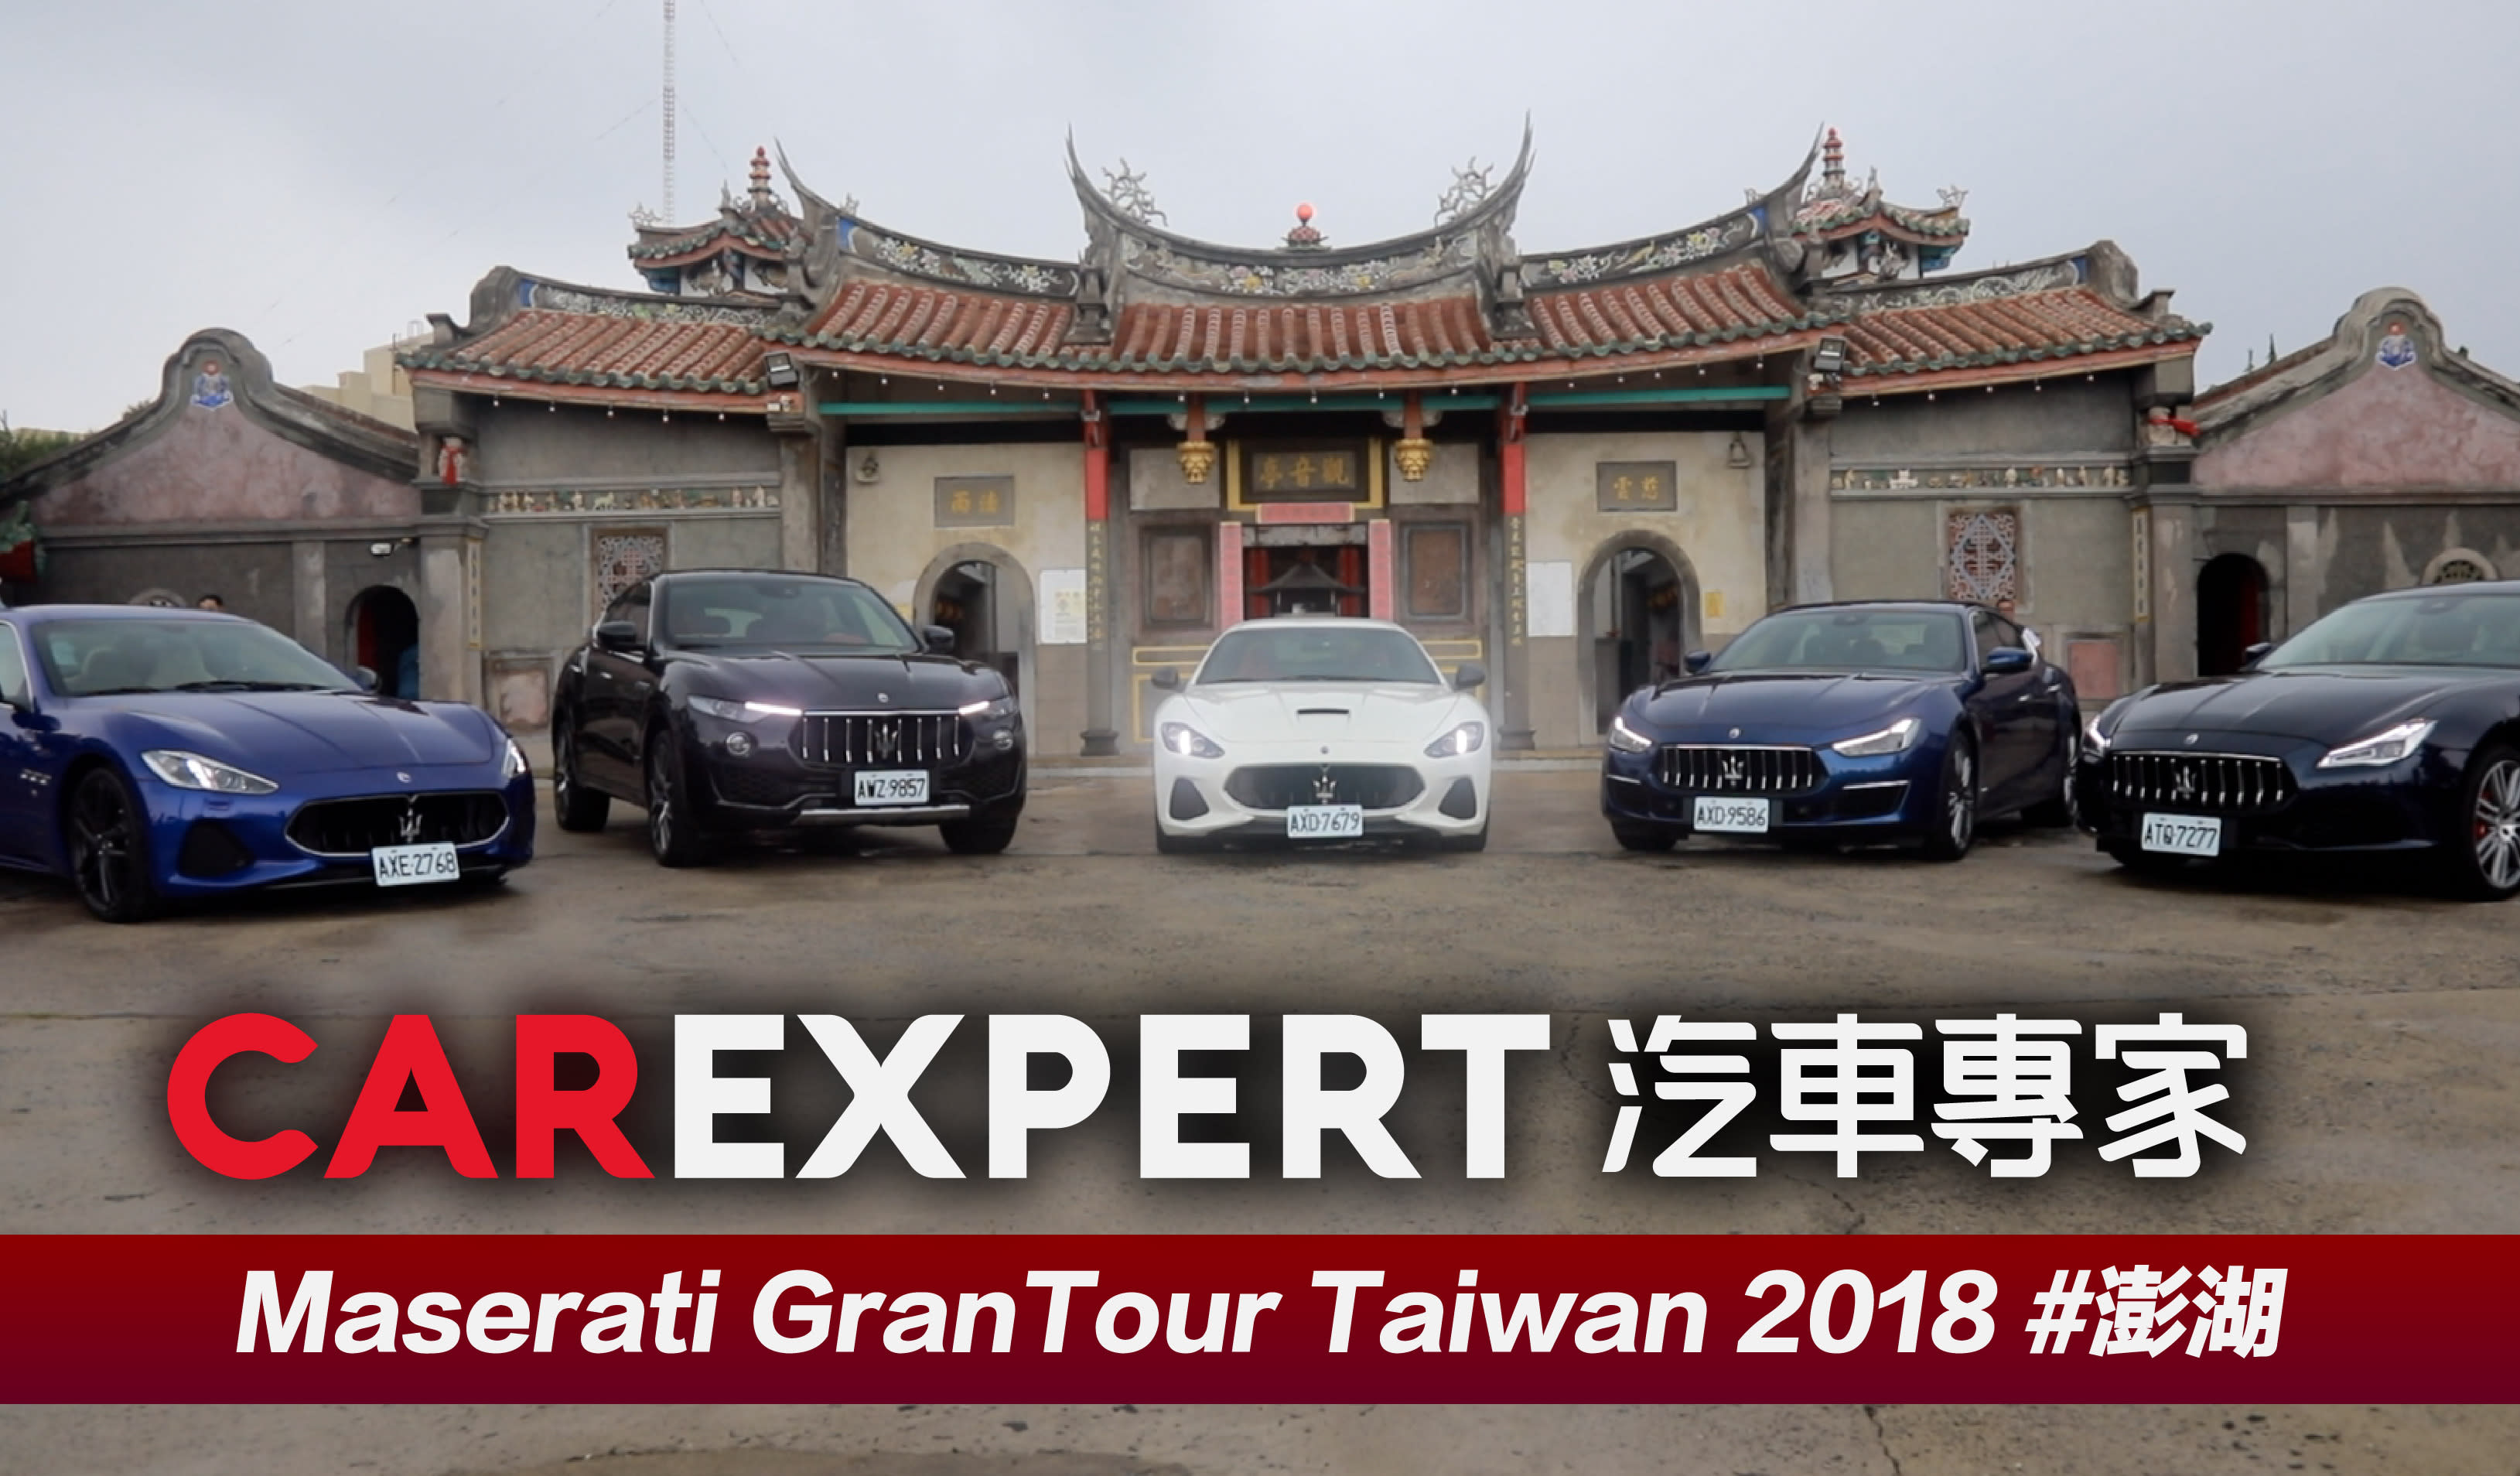 海神傳達「GT真義」 壯遊澎湖之旅 Maserati GranTour Taiwan 2018